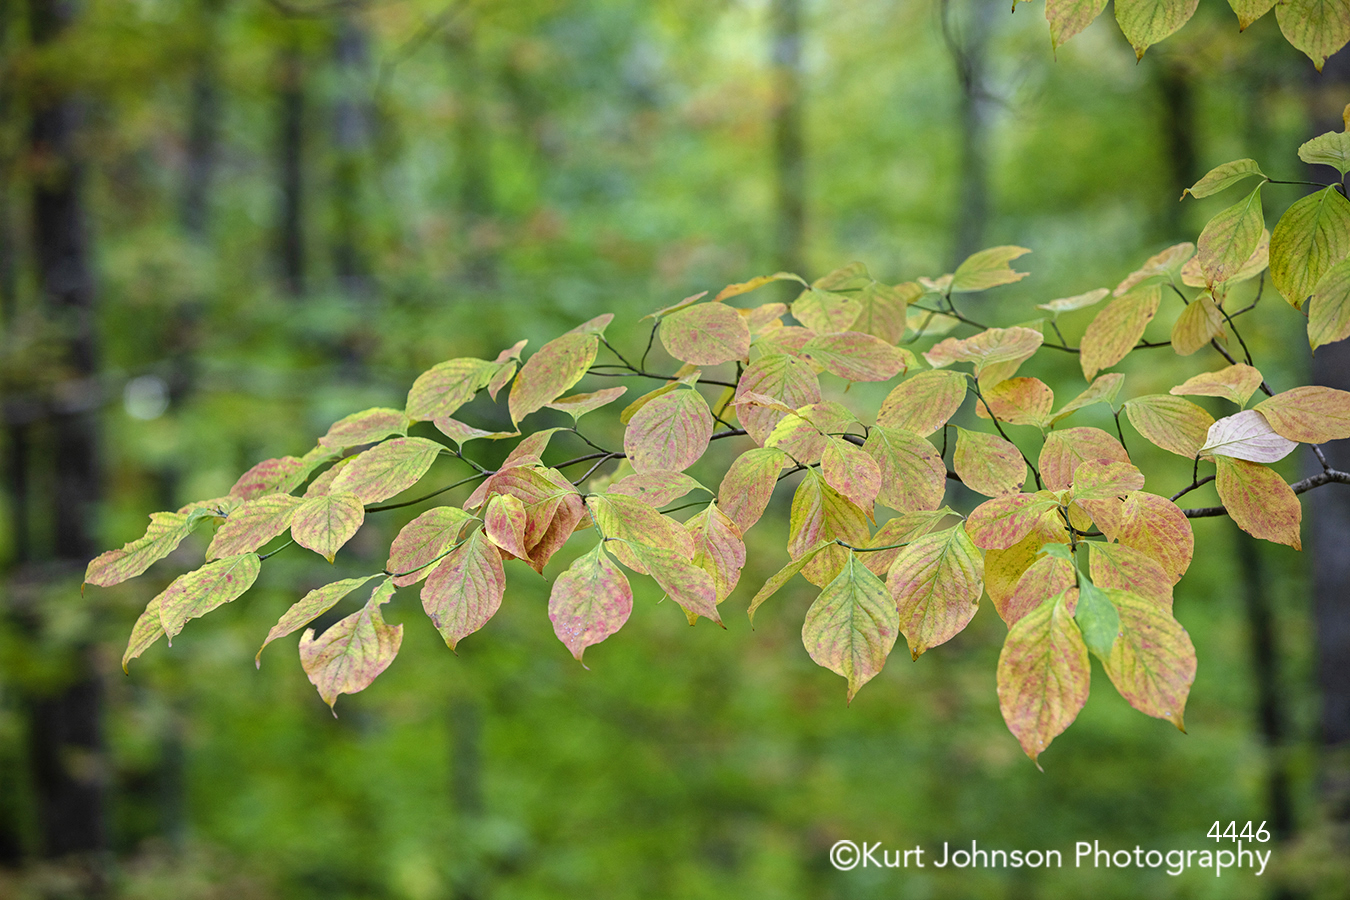 green leaves tree forest trees close up detail autumn fall color